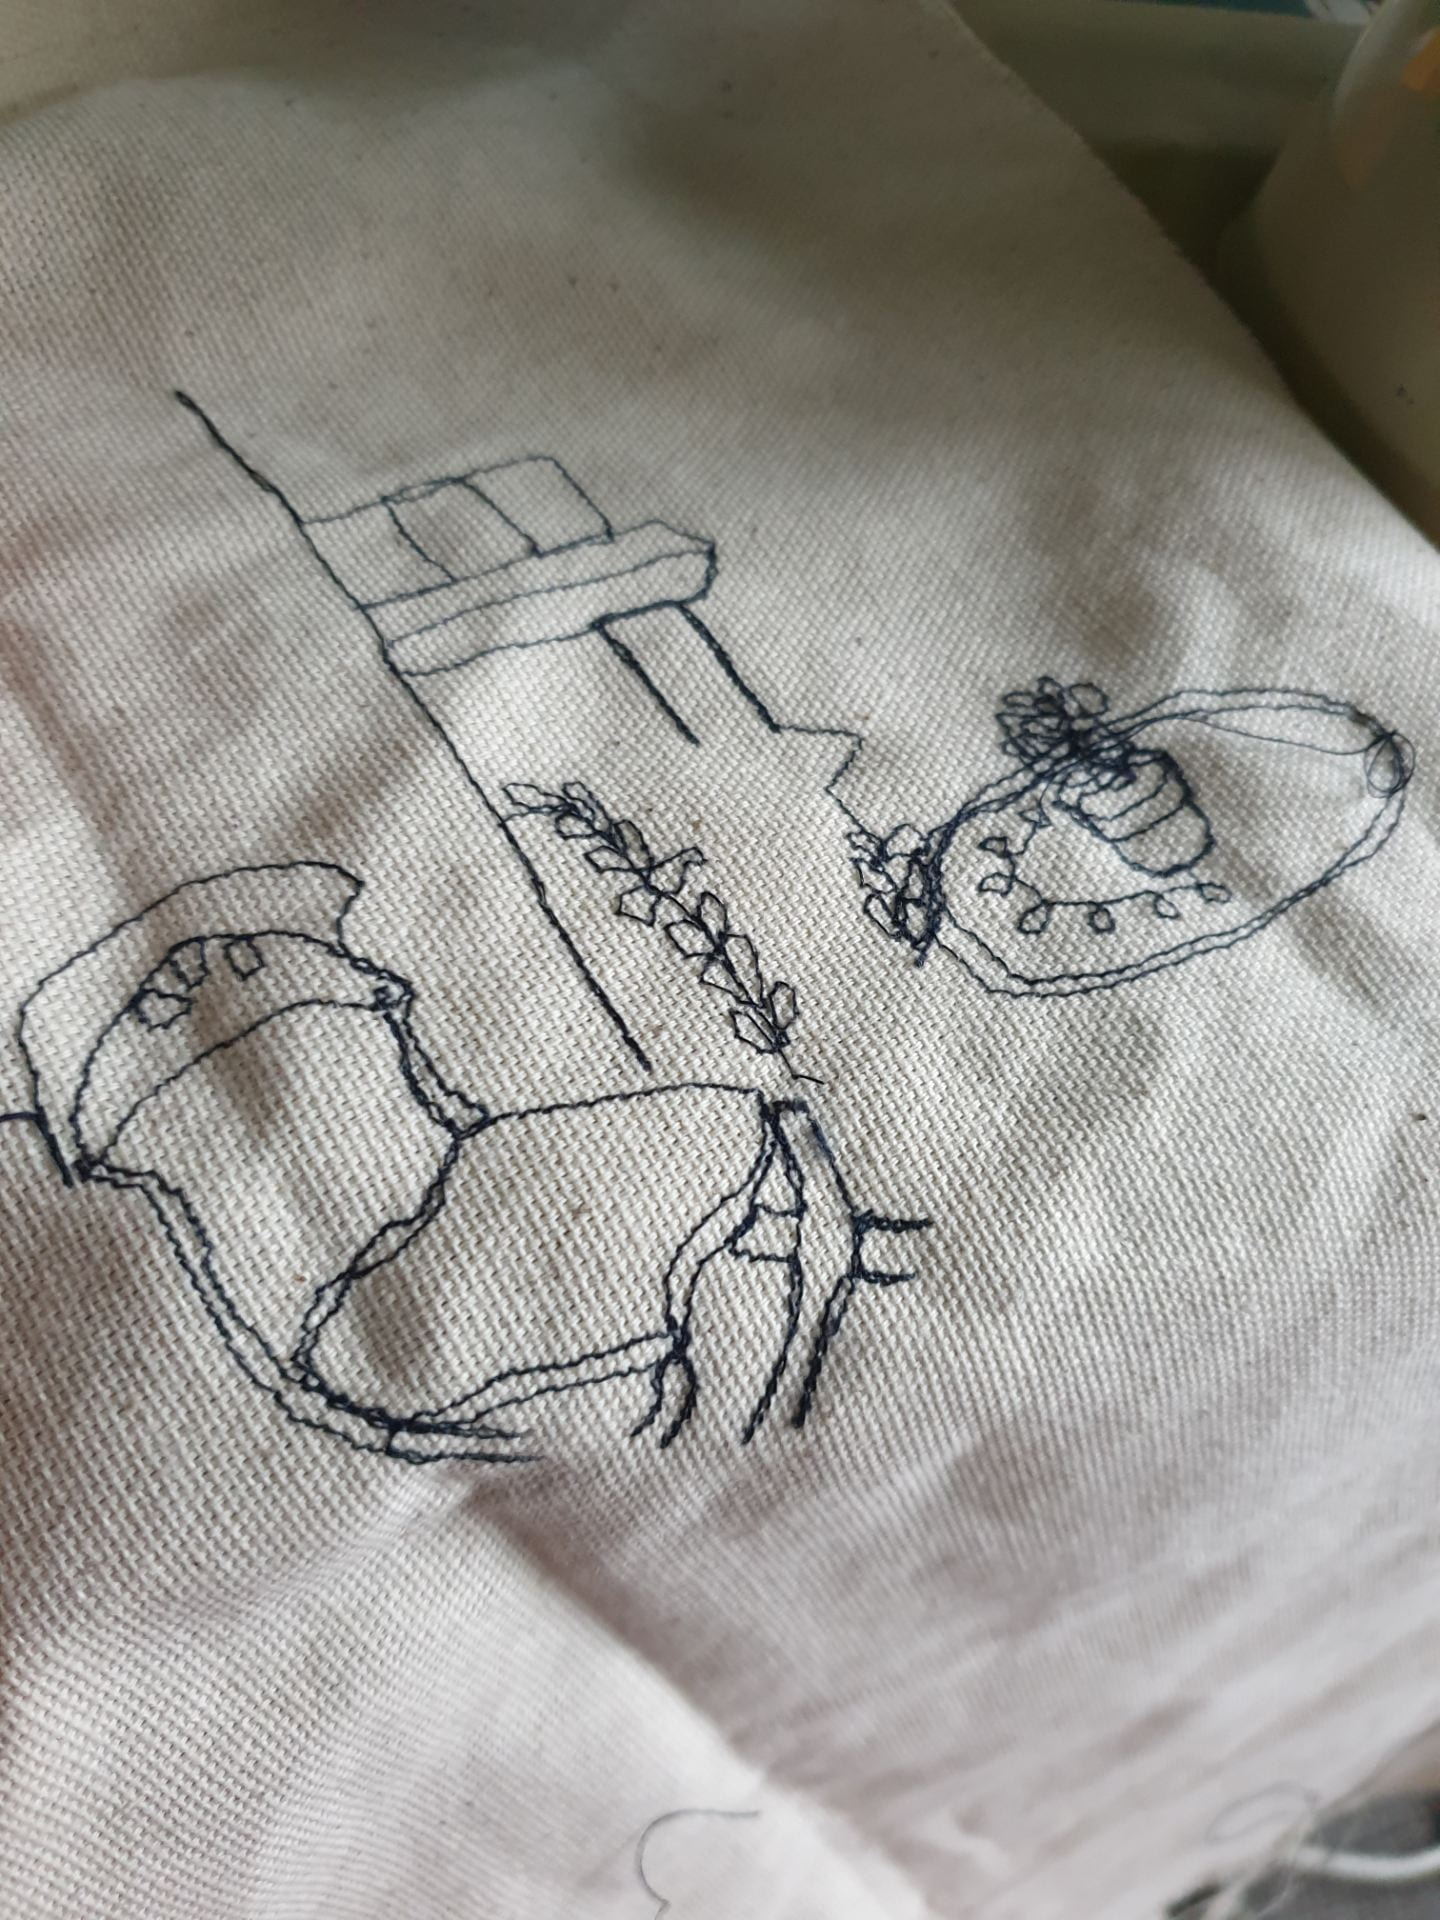 Embroidery of chair and table